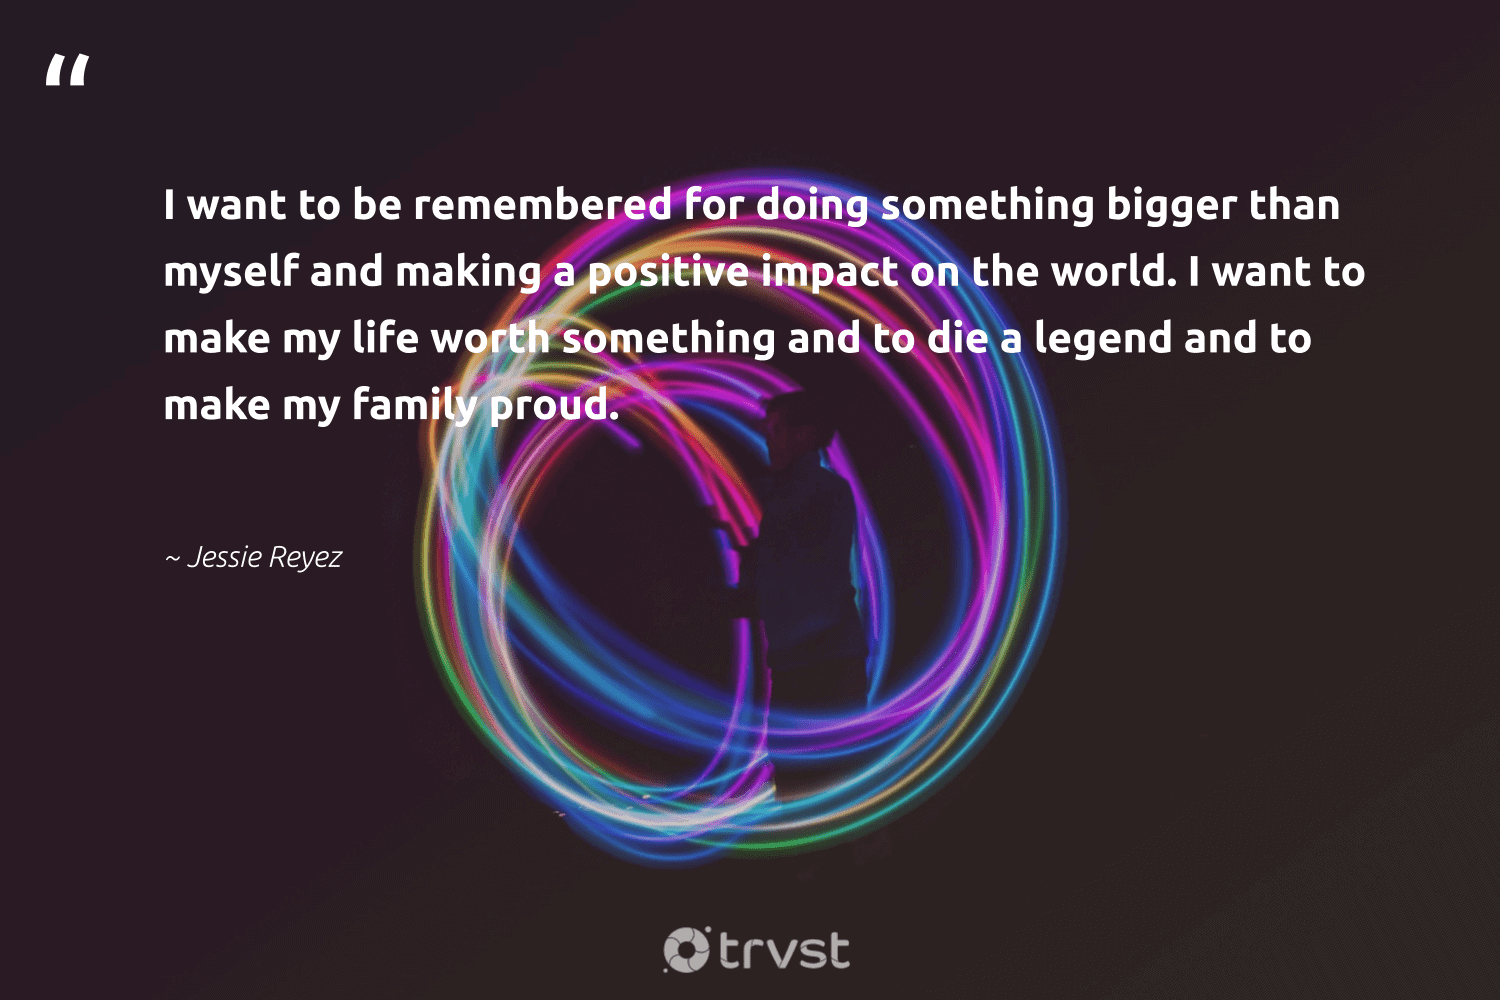 """""""I want to be remembered for doing something bigger than myself and making a positive impact on the world. I want to make my life worth something and to die a legend and to make my family proud.""""  - Jessie Reyez #trvst #quotes #impact #family #ethicalbusiness #socialimpact #dogood #takeaction #socialchange #bethechange #weareallone #gogreen"""